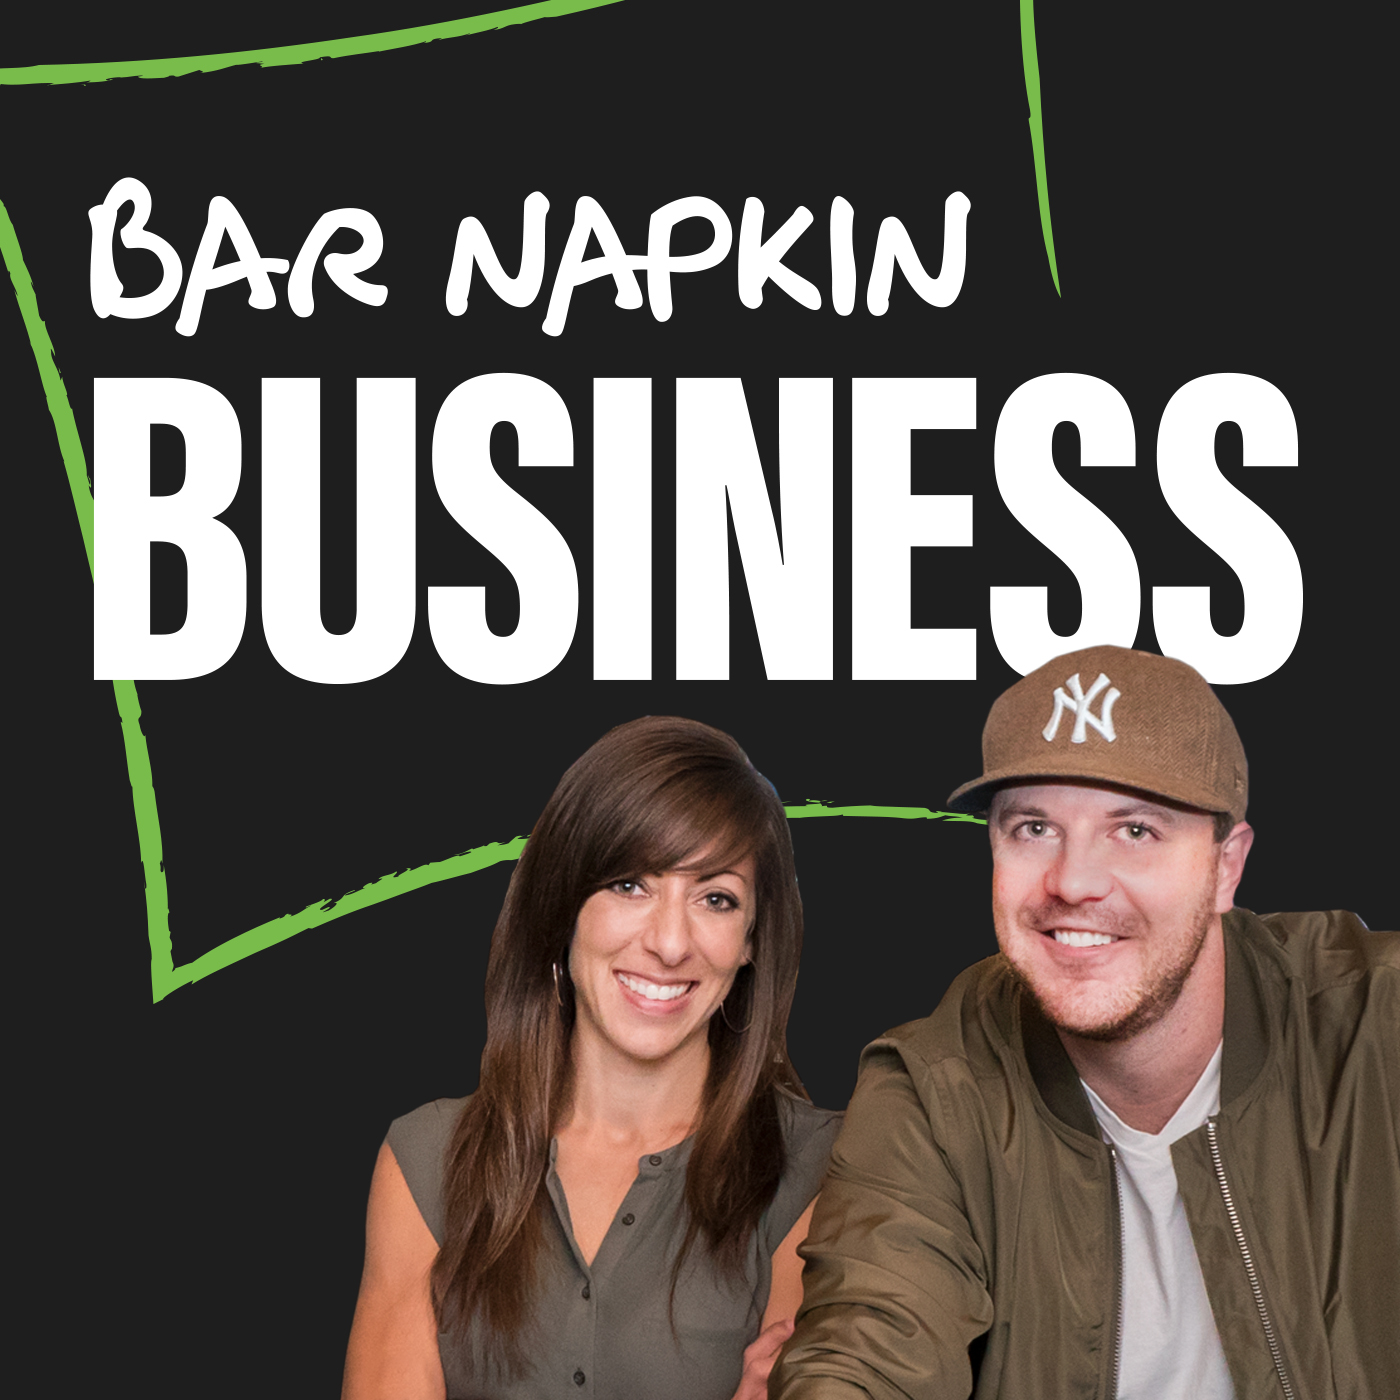 Business Planning on a Bar Napkin